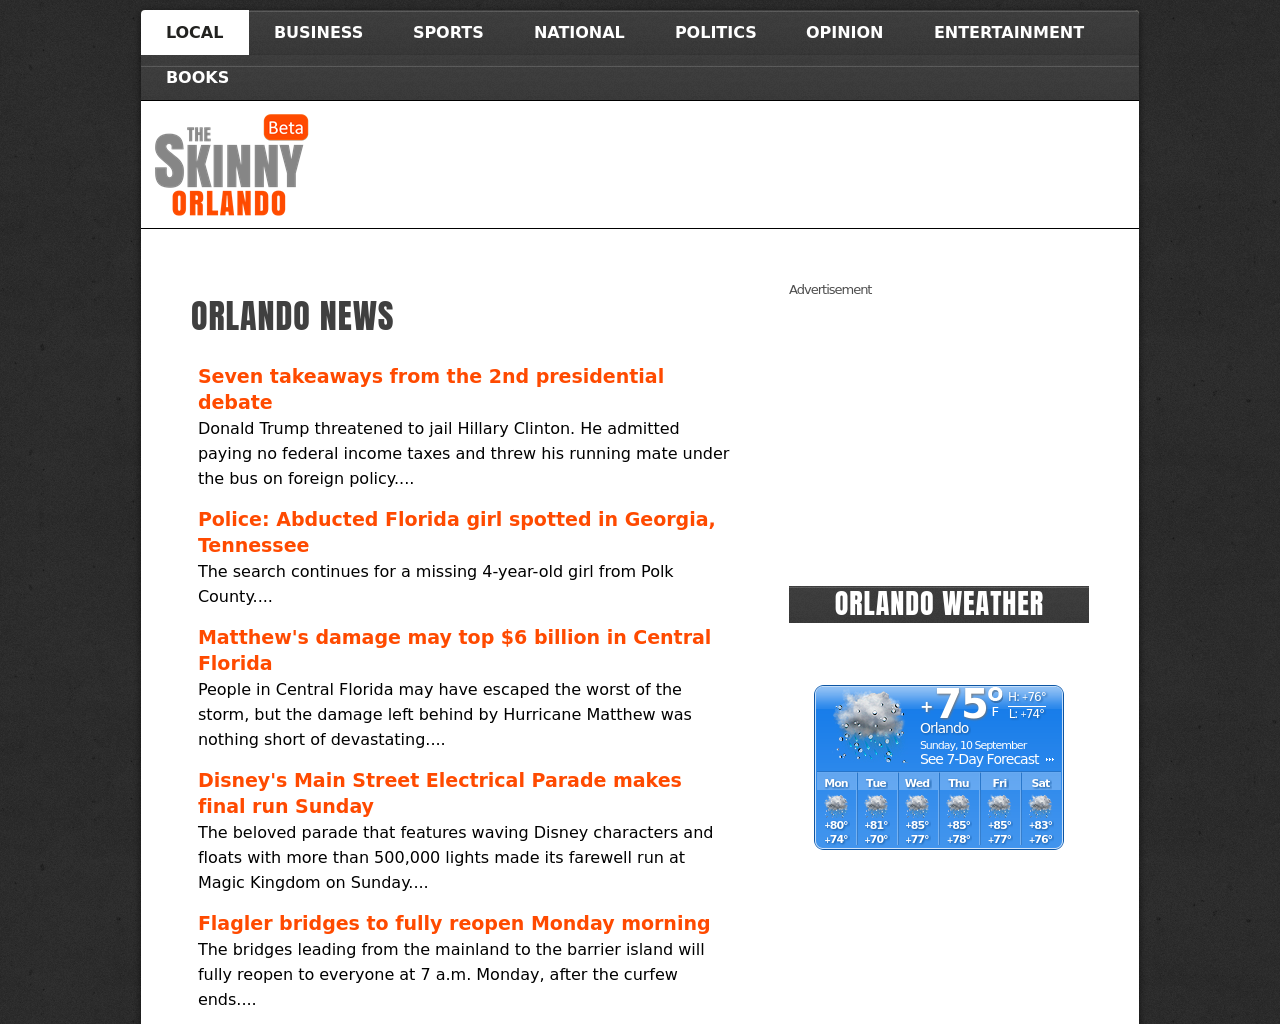 Orlando-Skinny-Advertising-Reviews-Pricing